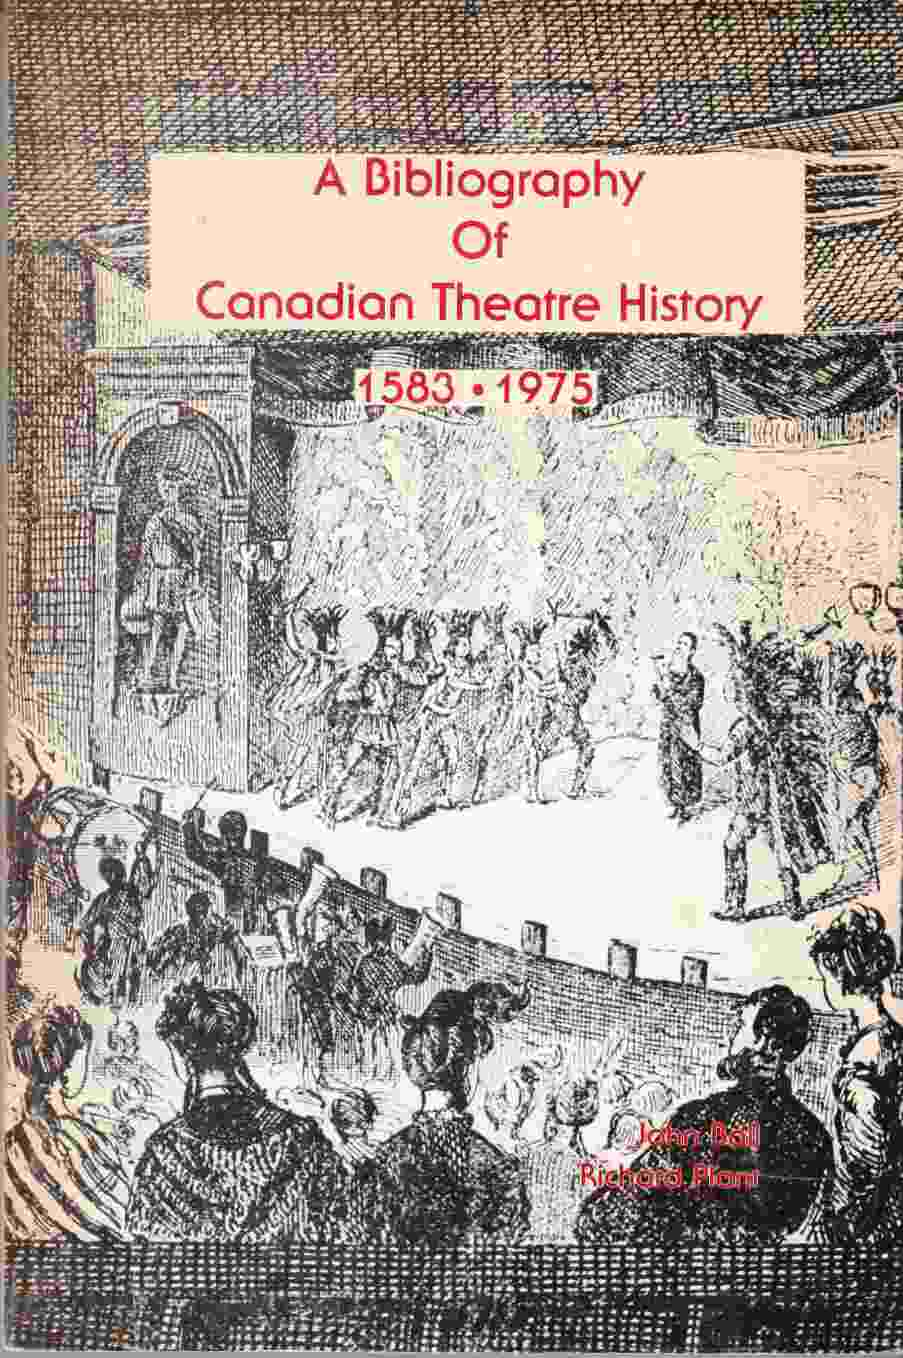 Image for A Bibliography of Canadian Theatre History 1853 - 1975